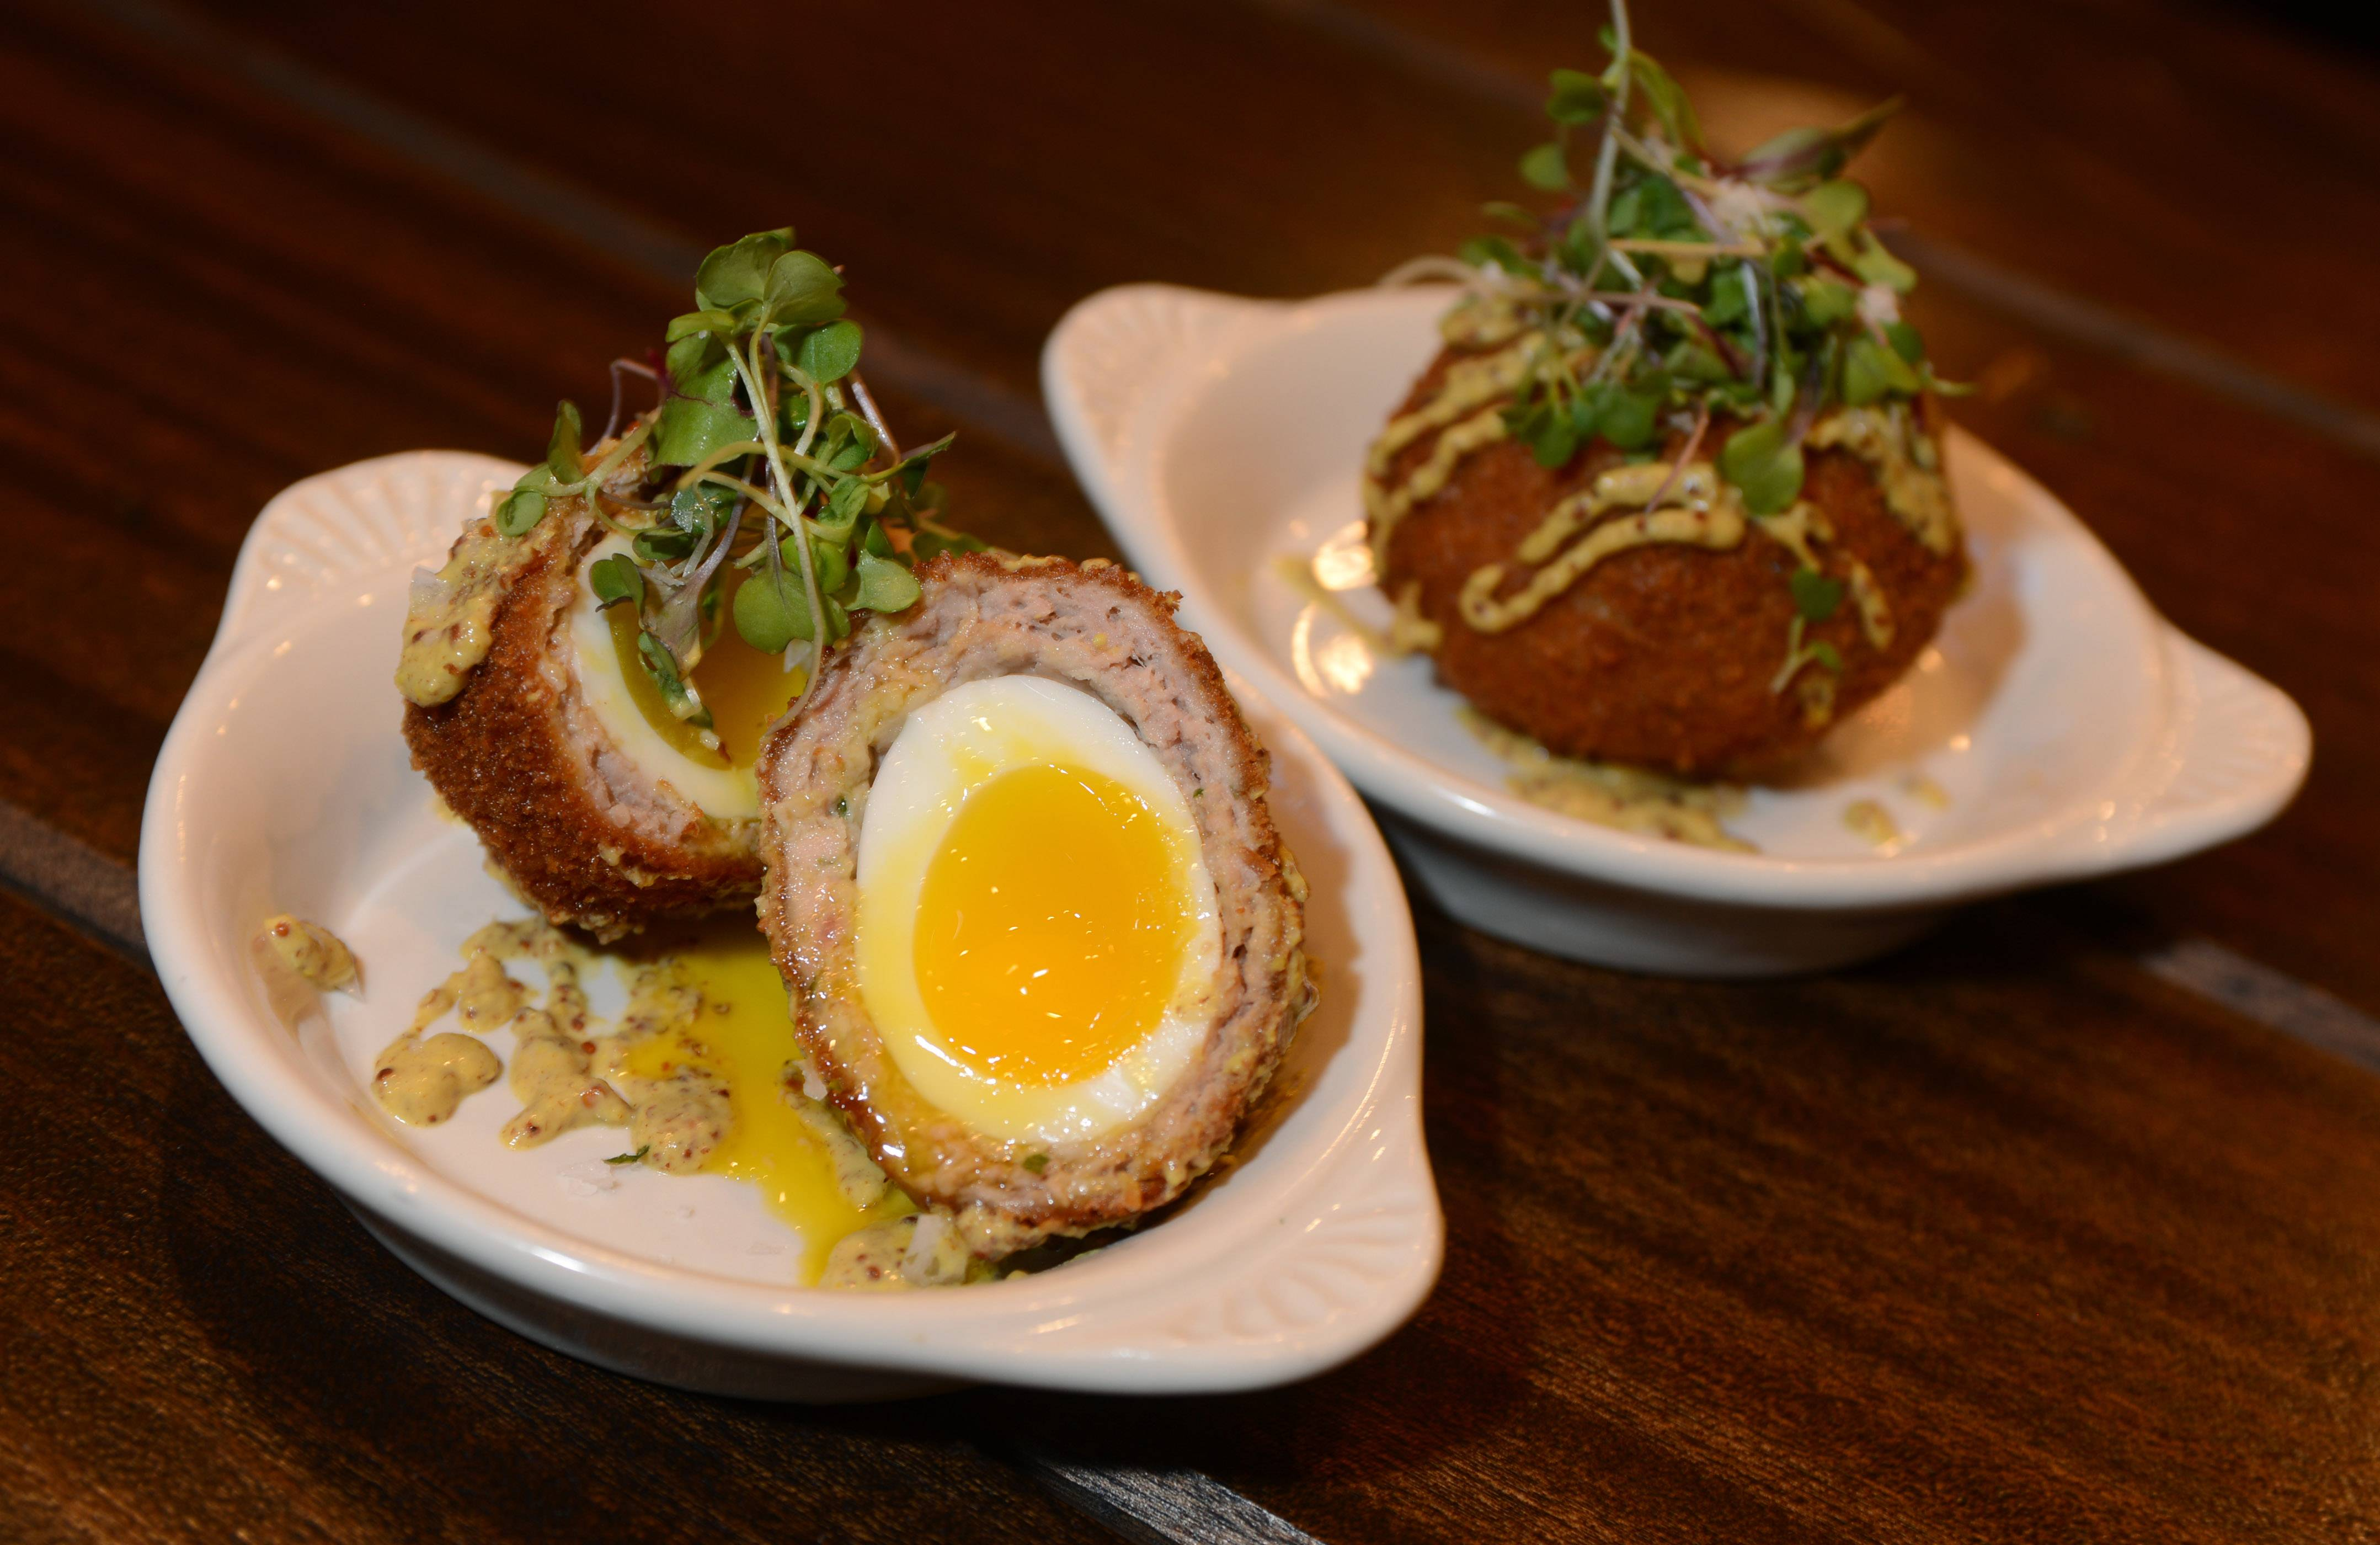 The Scotch egg (a soft-boiled egg wrapped in sausage and fried) was complemented by microgreens and a spicy beer mustard at O'Toole's of Libertyville.